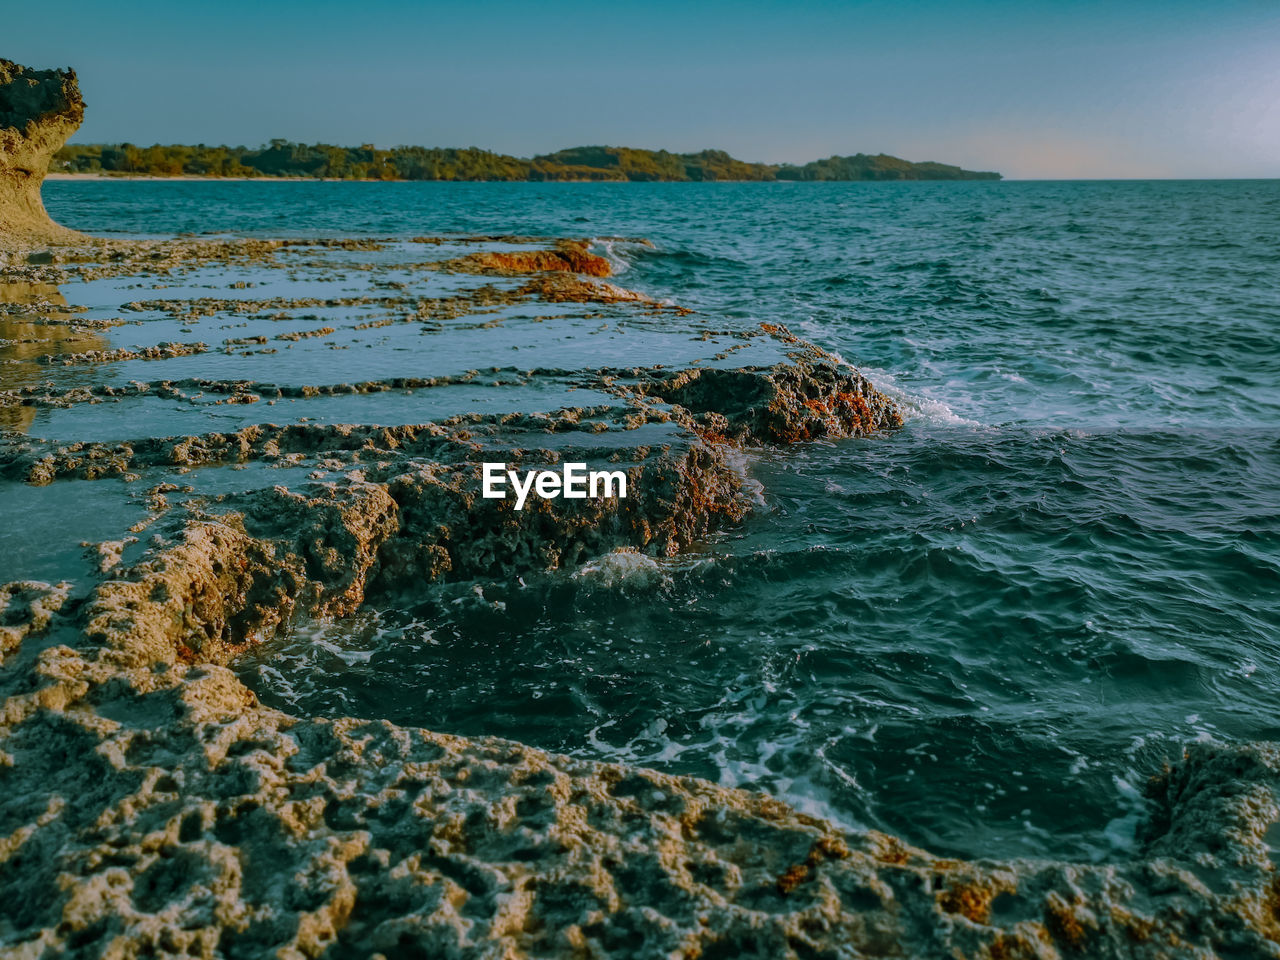 sea, water, beauty in nature, sky, scenics - nature, nature, rock, day, no people, solid, motion, land, rock - object, wave, tranquility, beach, tranquil scene, waterfront, horizon, outdoors, horizon over water, marine